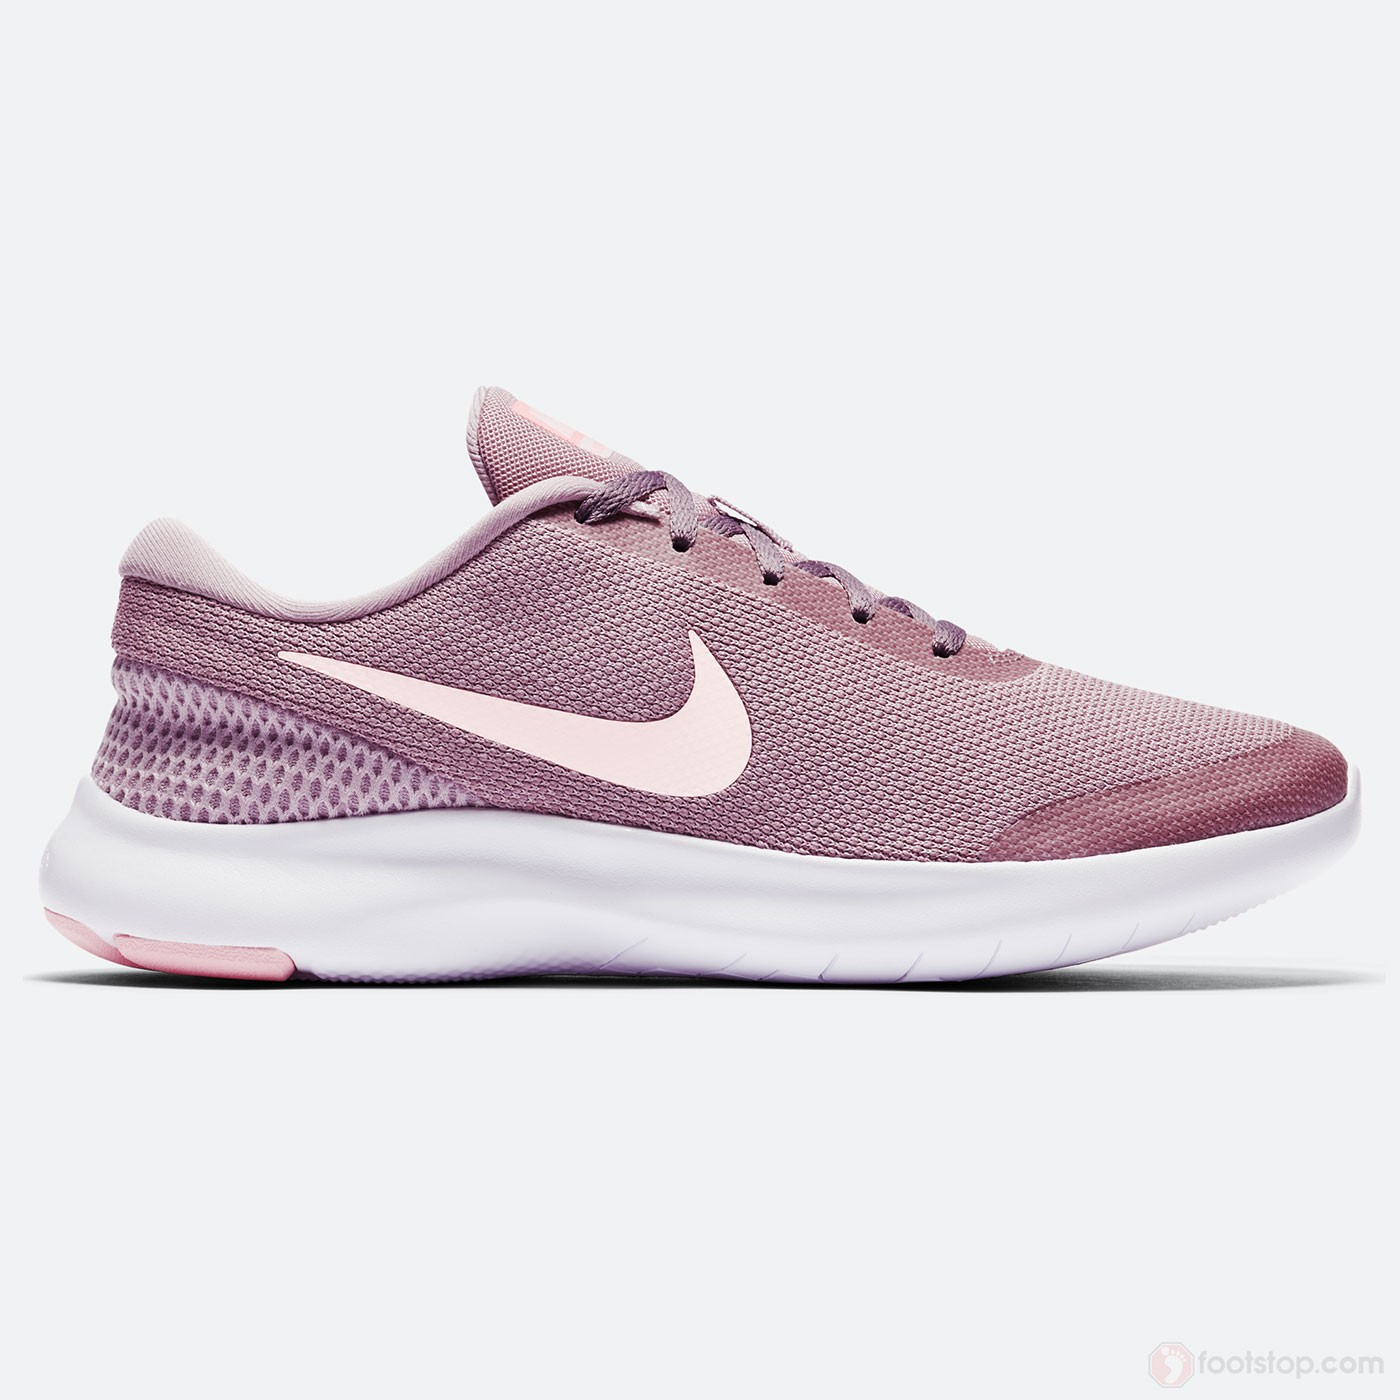 Nike Flex Experience Rn 7 (Rose/Artic Punch) - Donne 908996 600